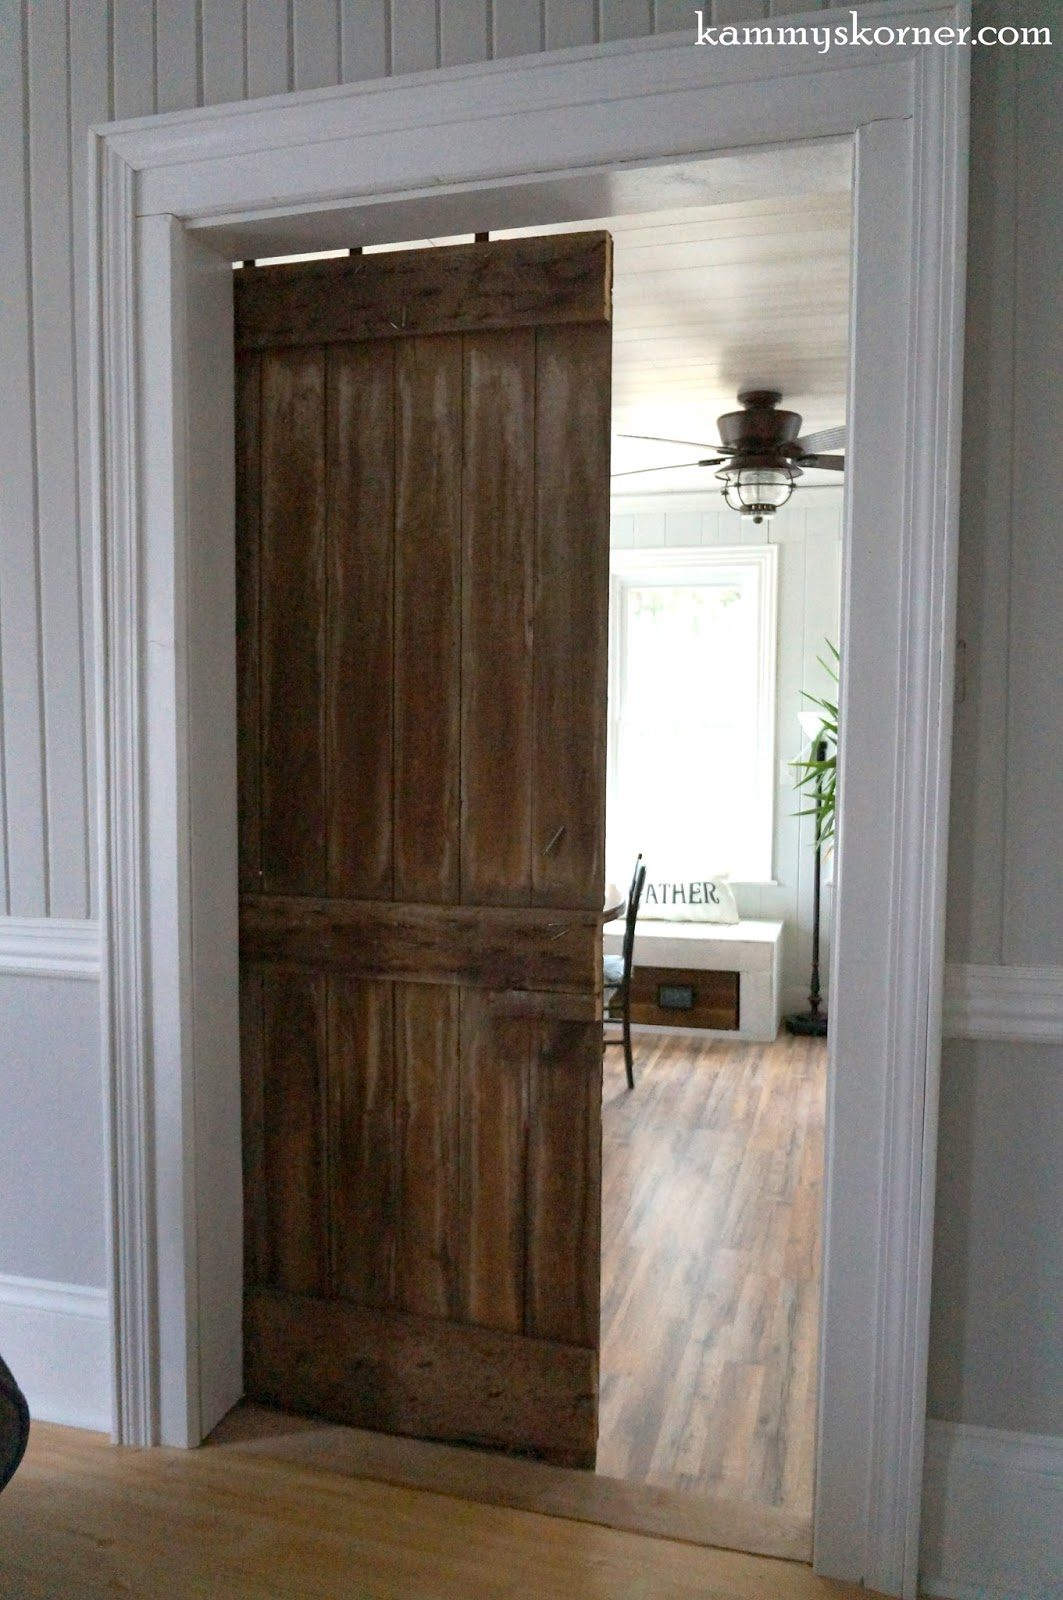 Kammy 39 s korner rescued barn door from a forsaken iowa farm for Back door sliding door